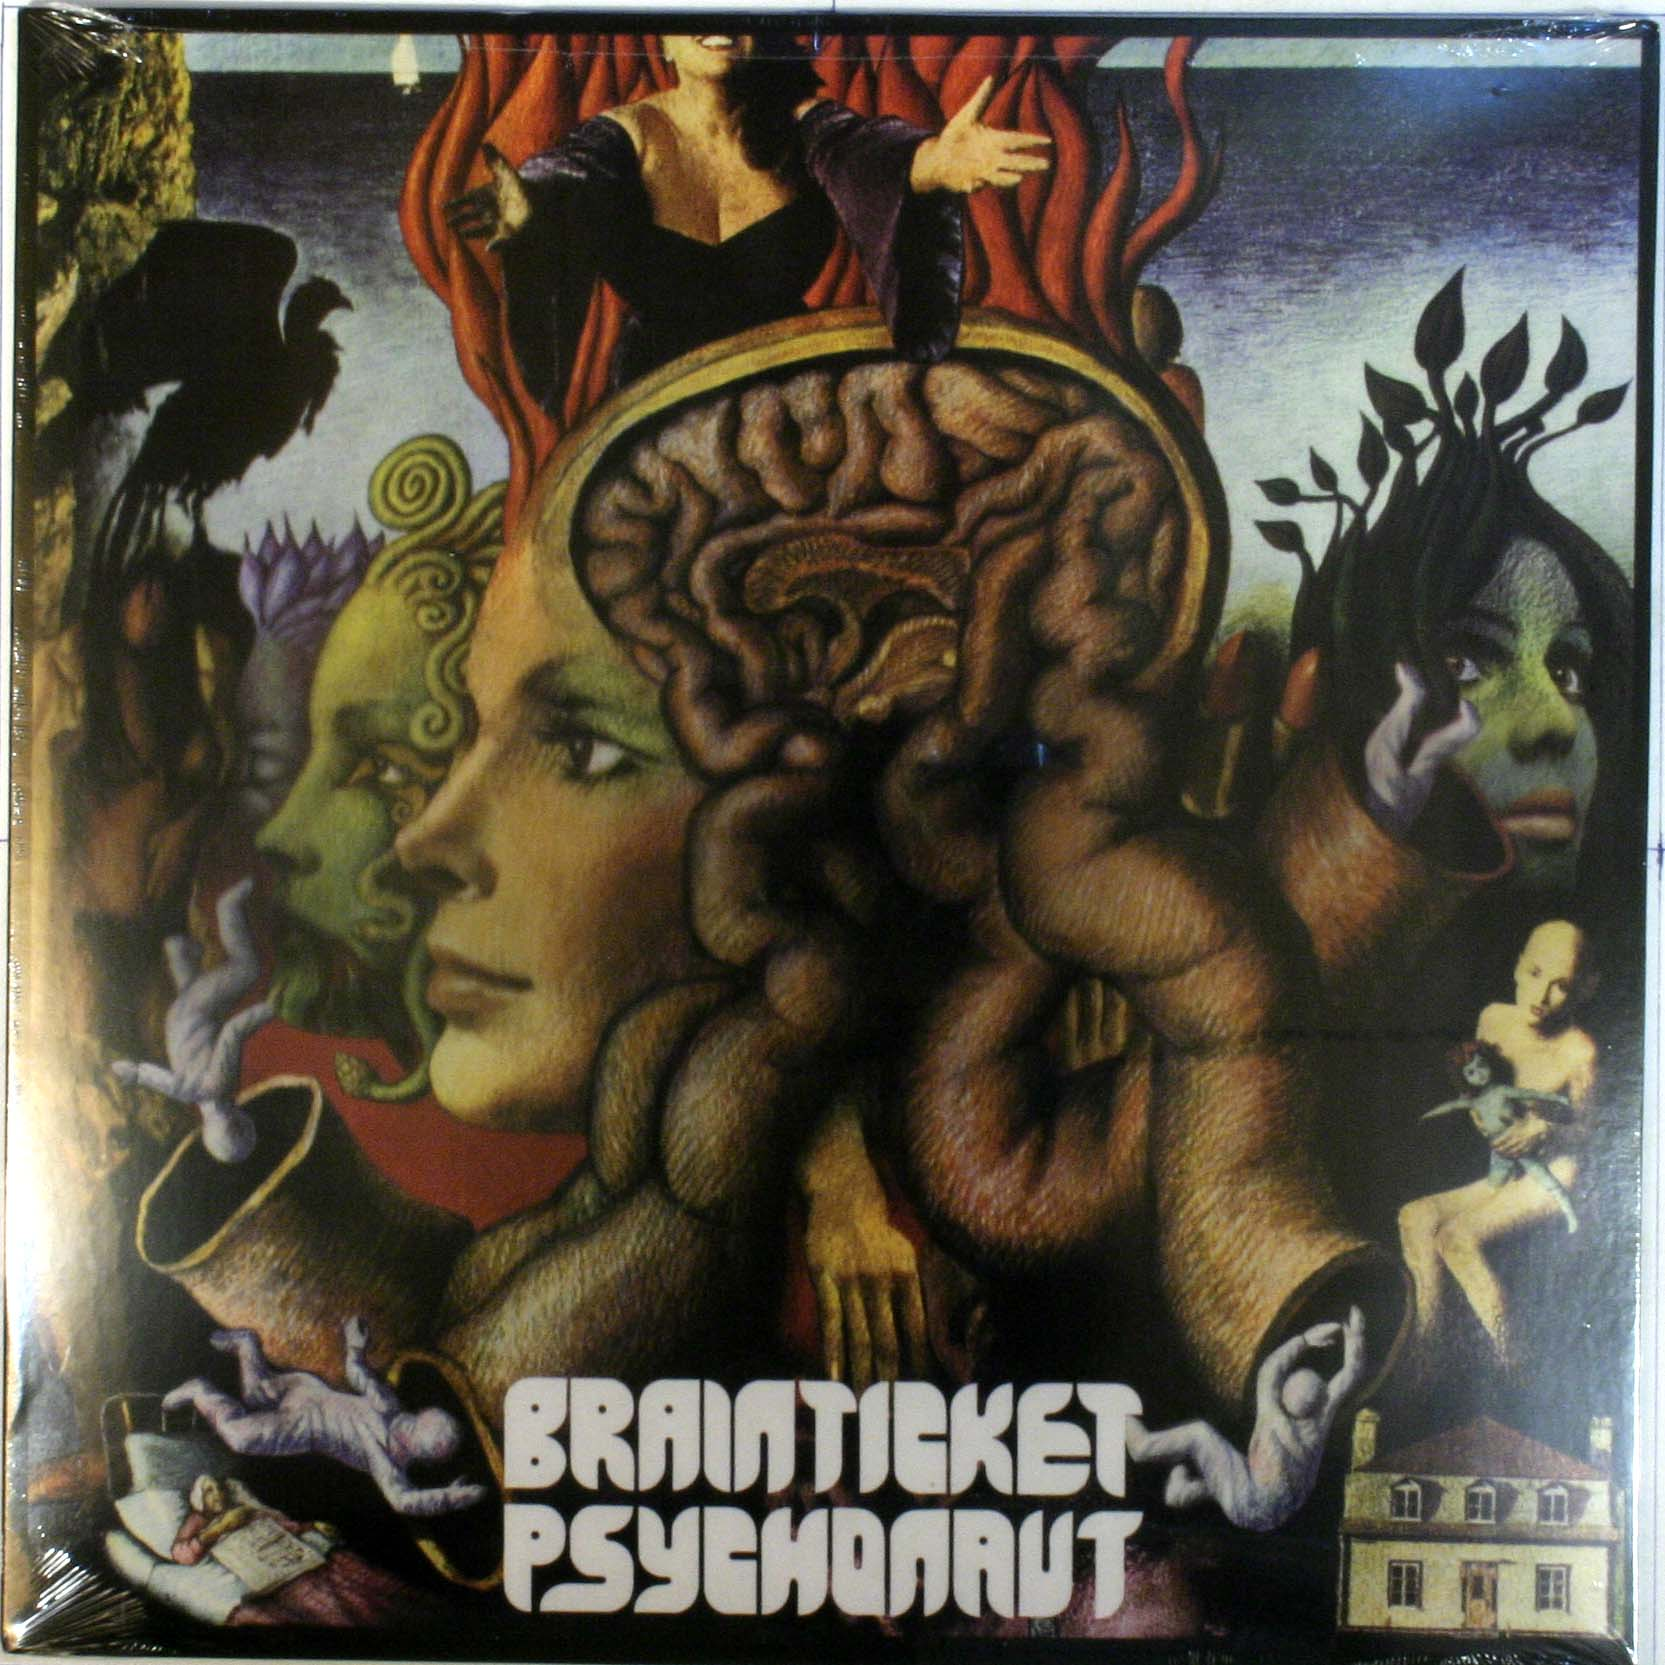 Brainticket - Psychonaut Album